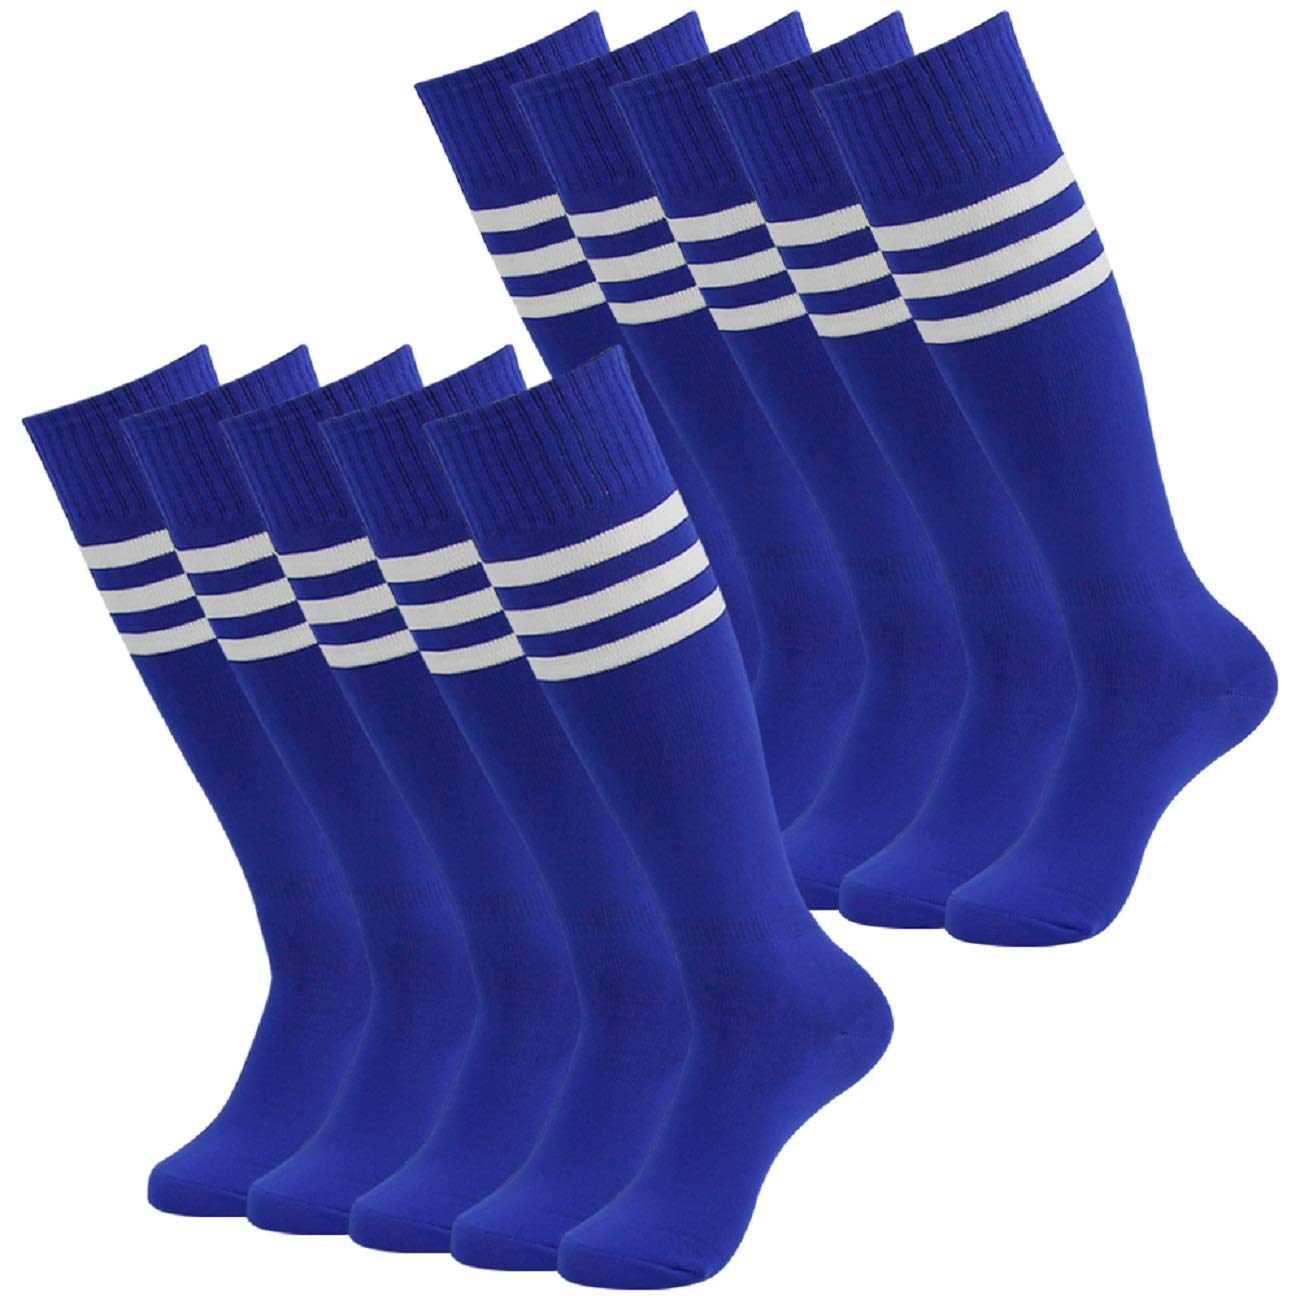 Soccer Socks for Women Men,Fasoar Knee High Baseball Rugby Running Football Socks 10 Pack Blue by Fasoar